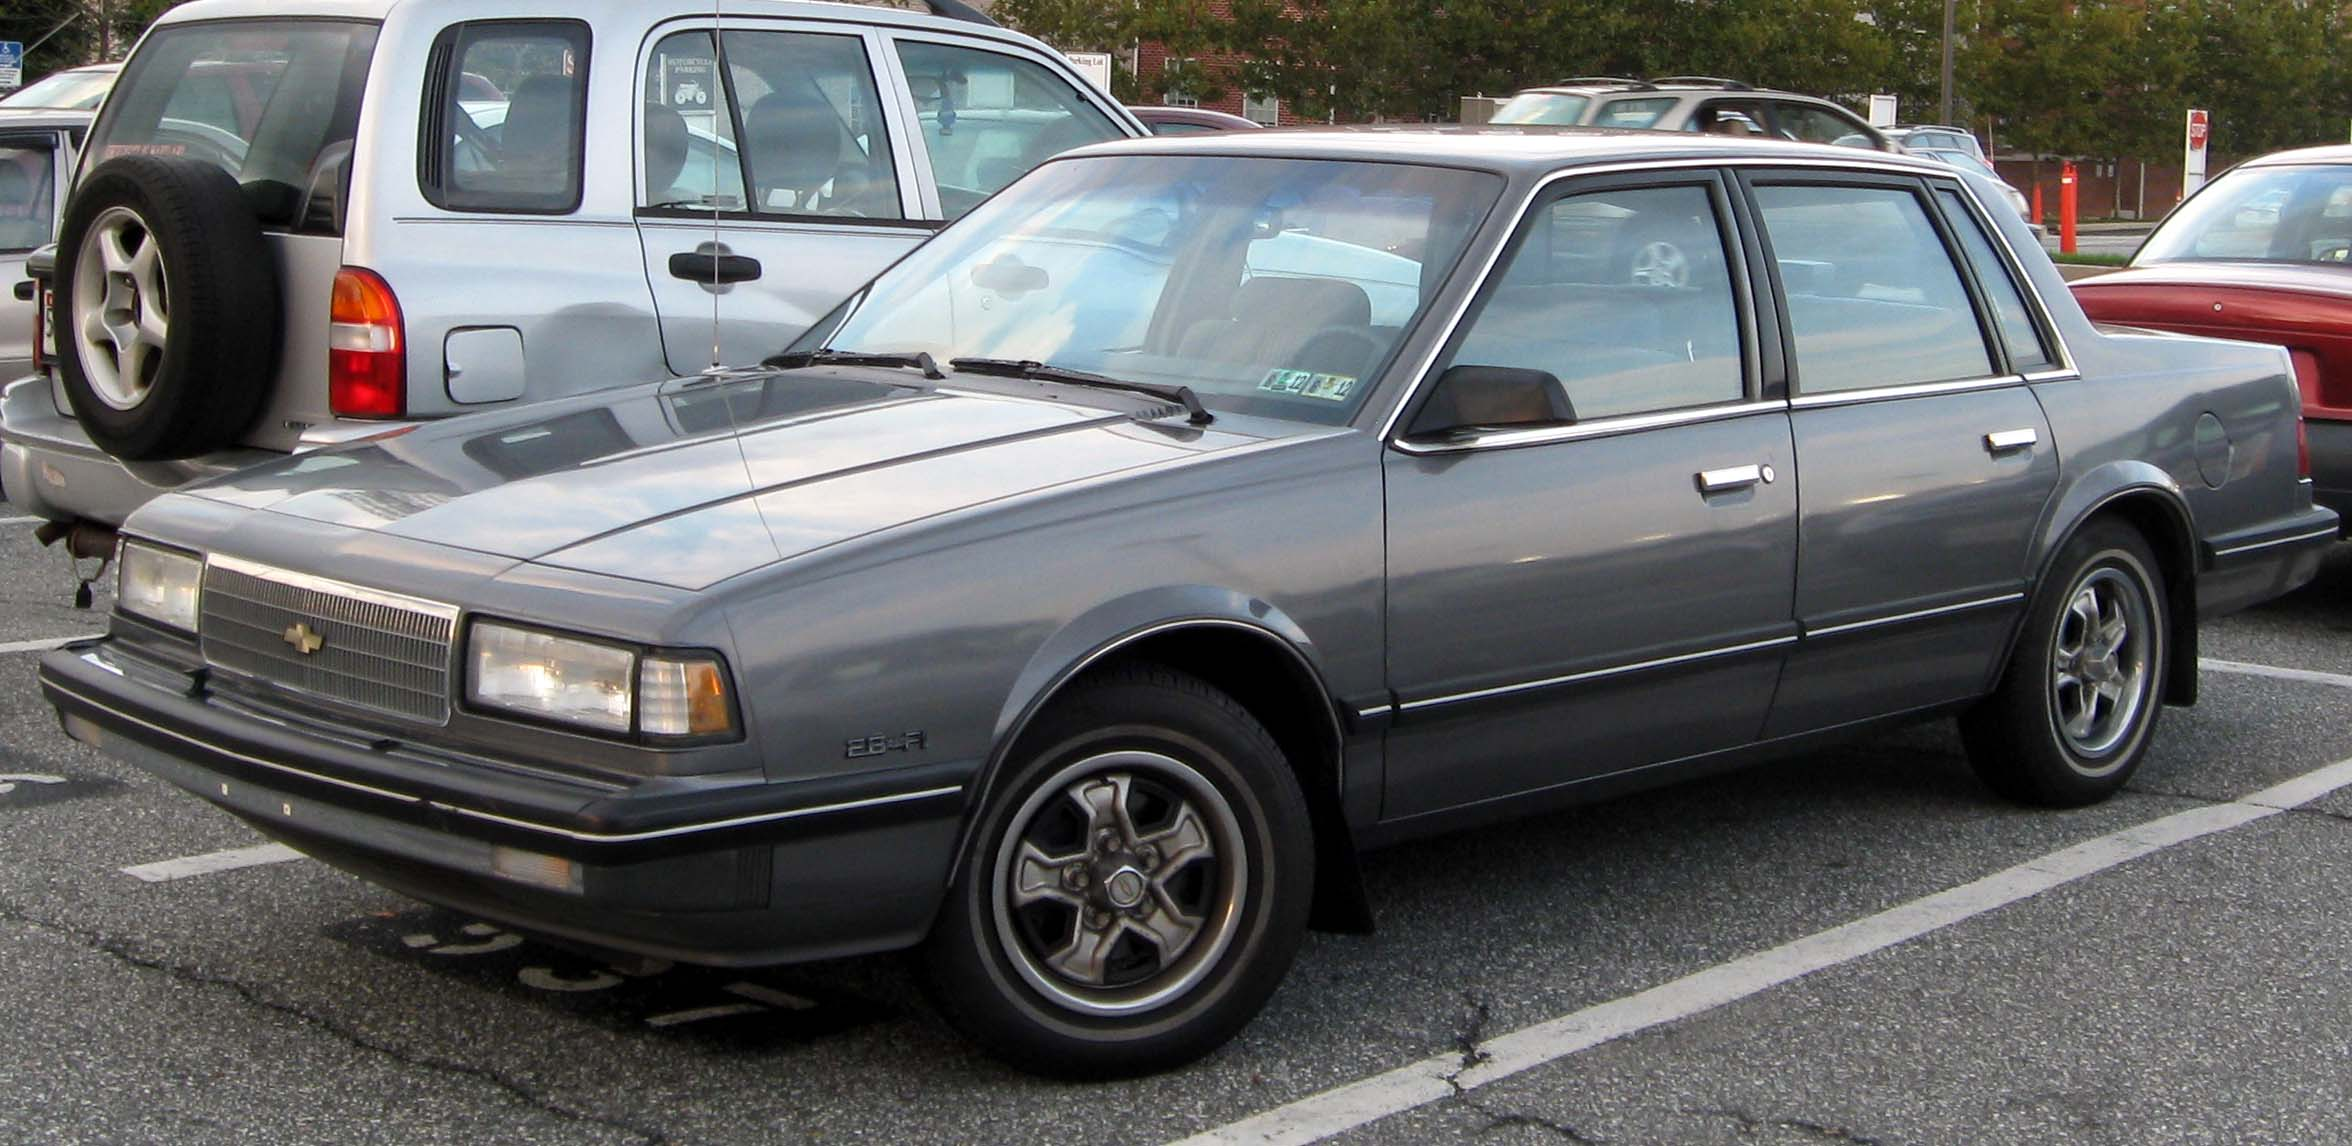 1989 Chevy Celebrity: Hello I Have a 1989 Chevy Celebrity ...